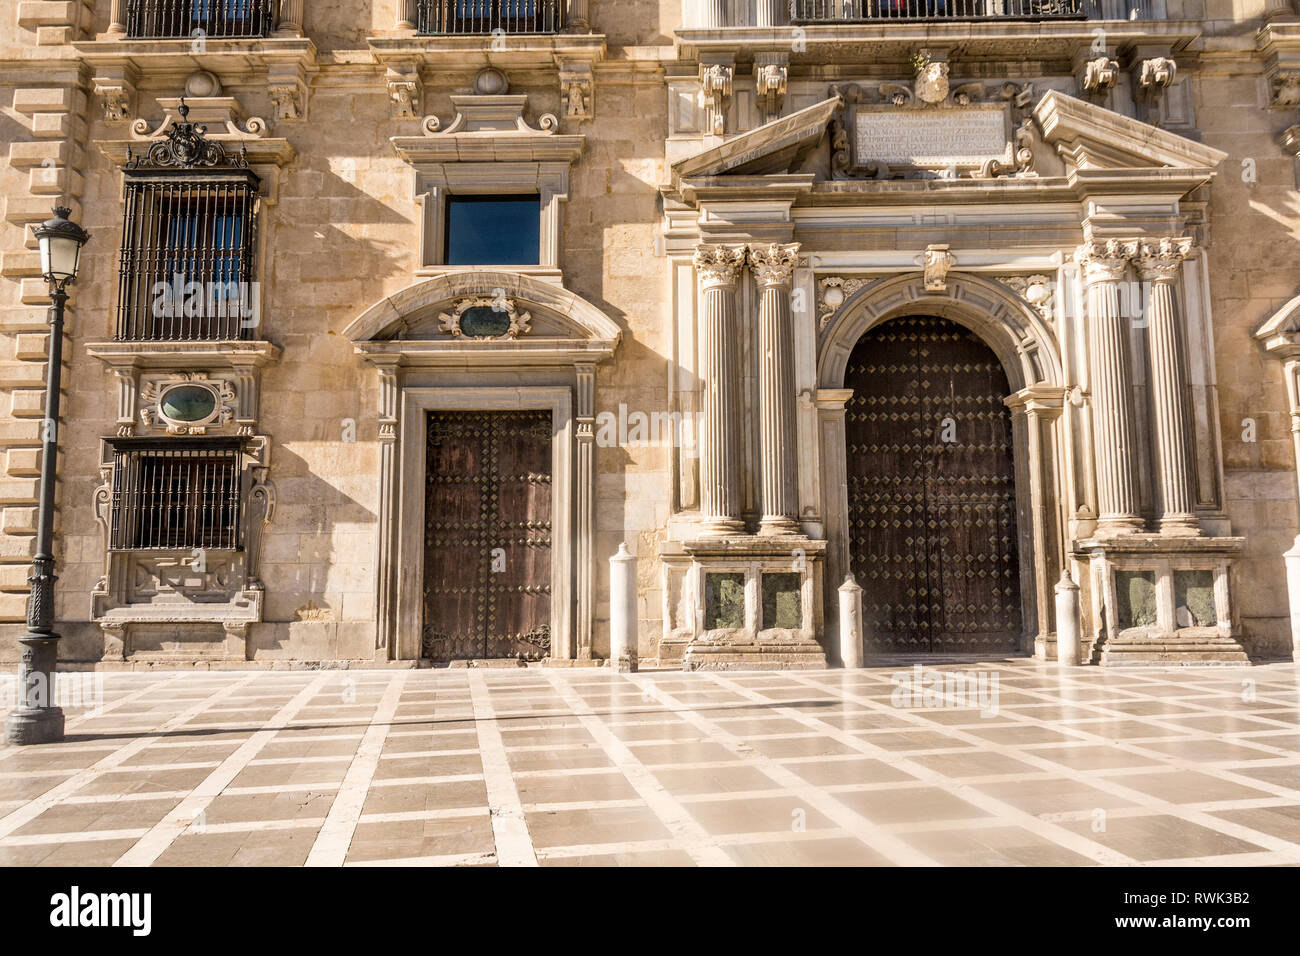 One of the main plazas in the city of Granada, Spain. - Stock Image